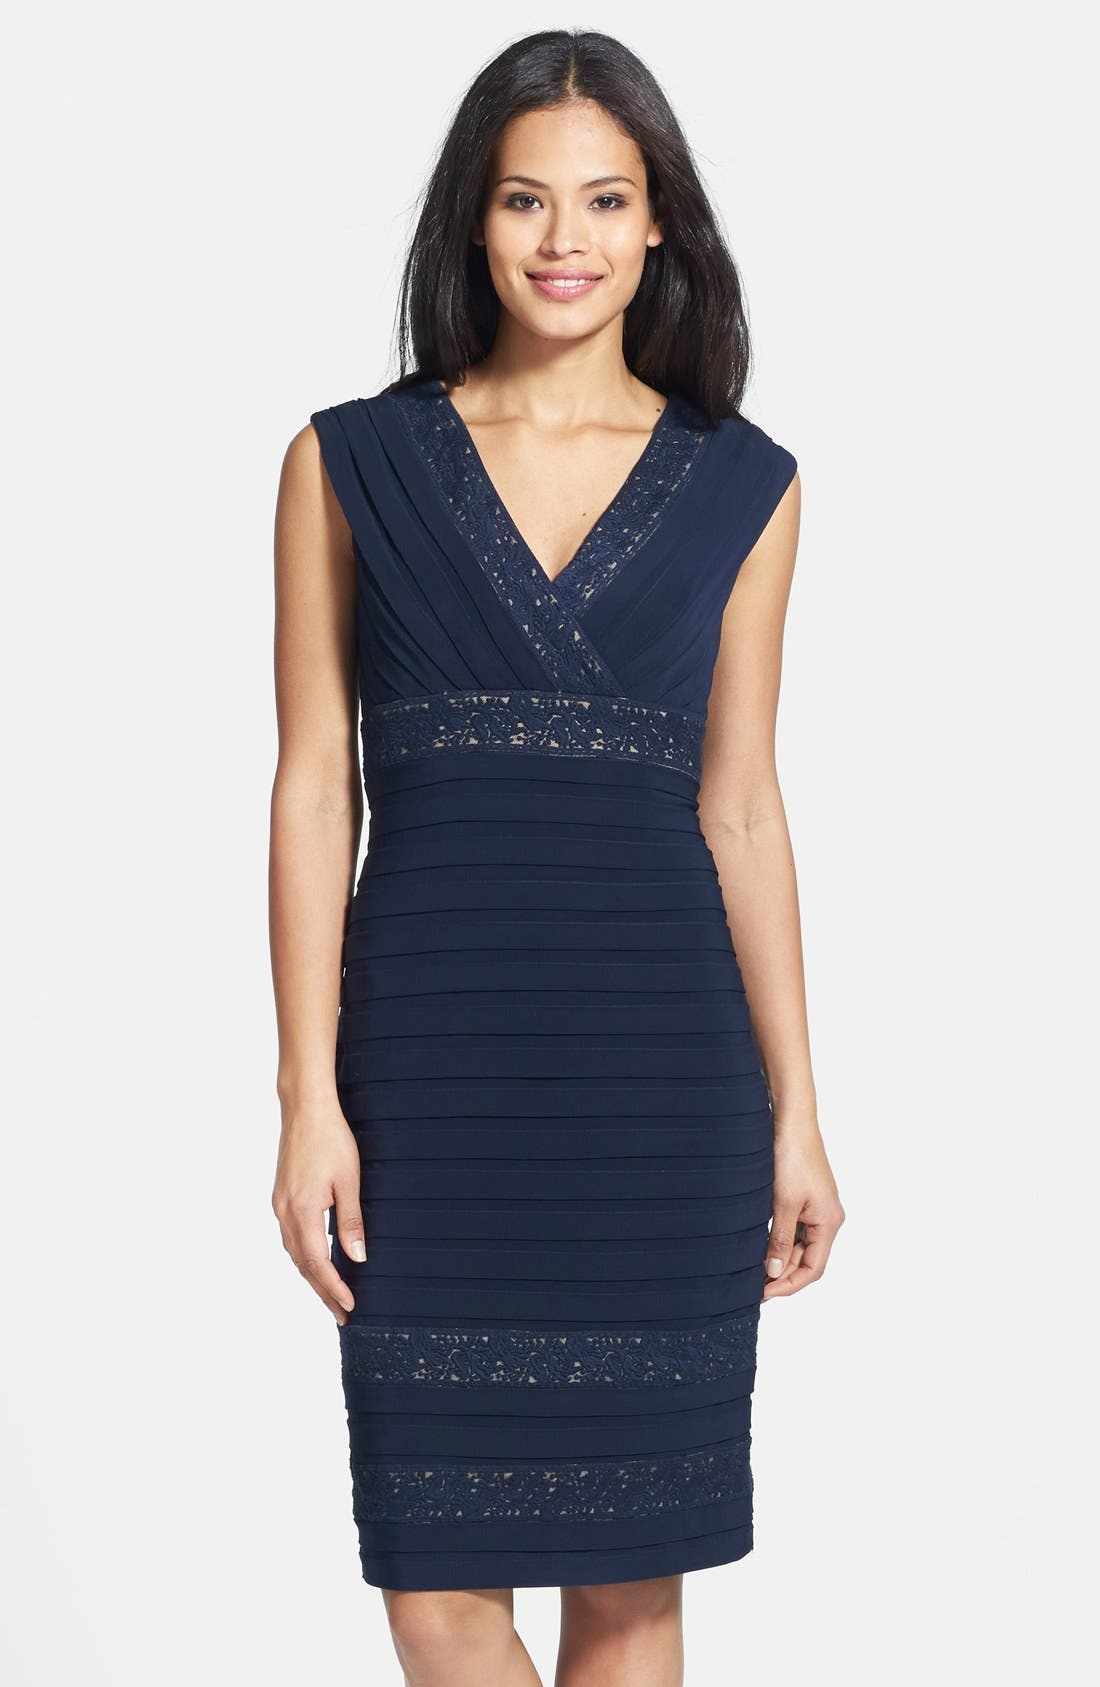 Alternate Image 1 Selected - Adrianna Papell Lace Inset Banded Sheath Dress